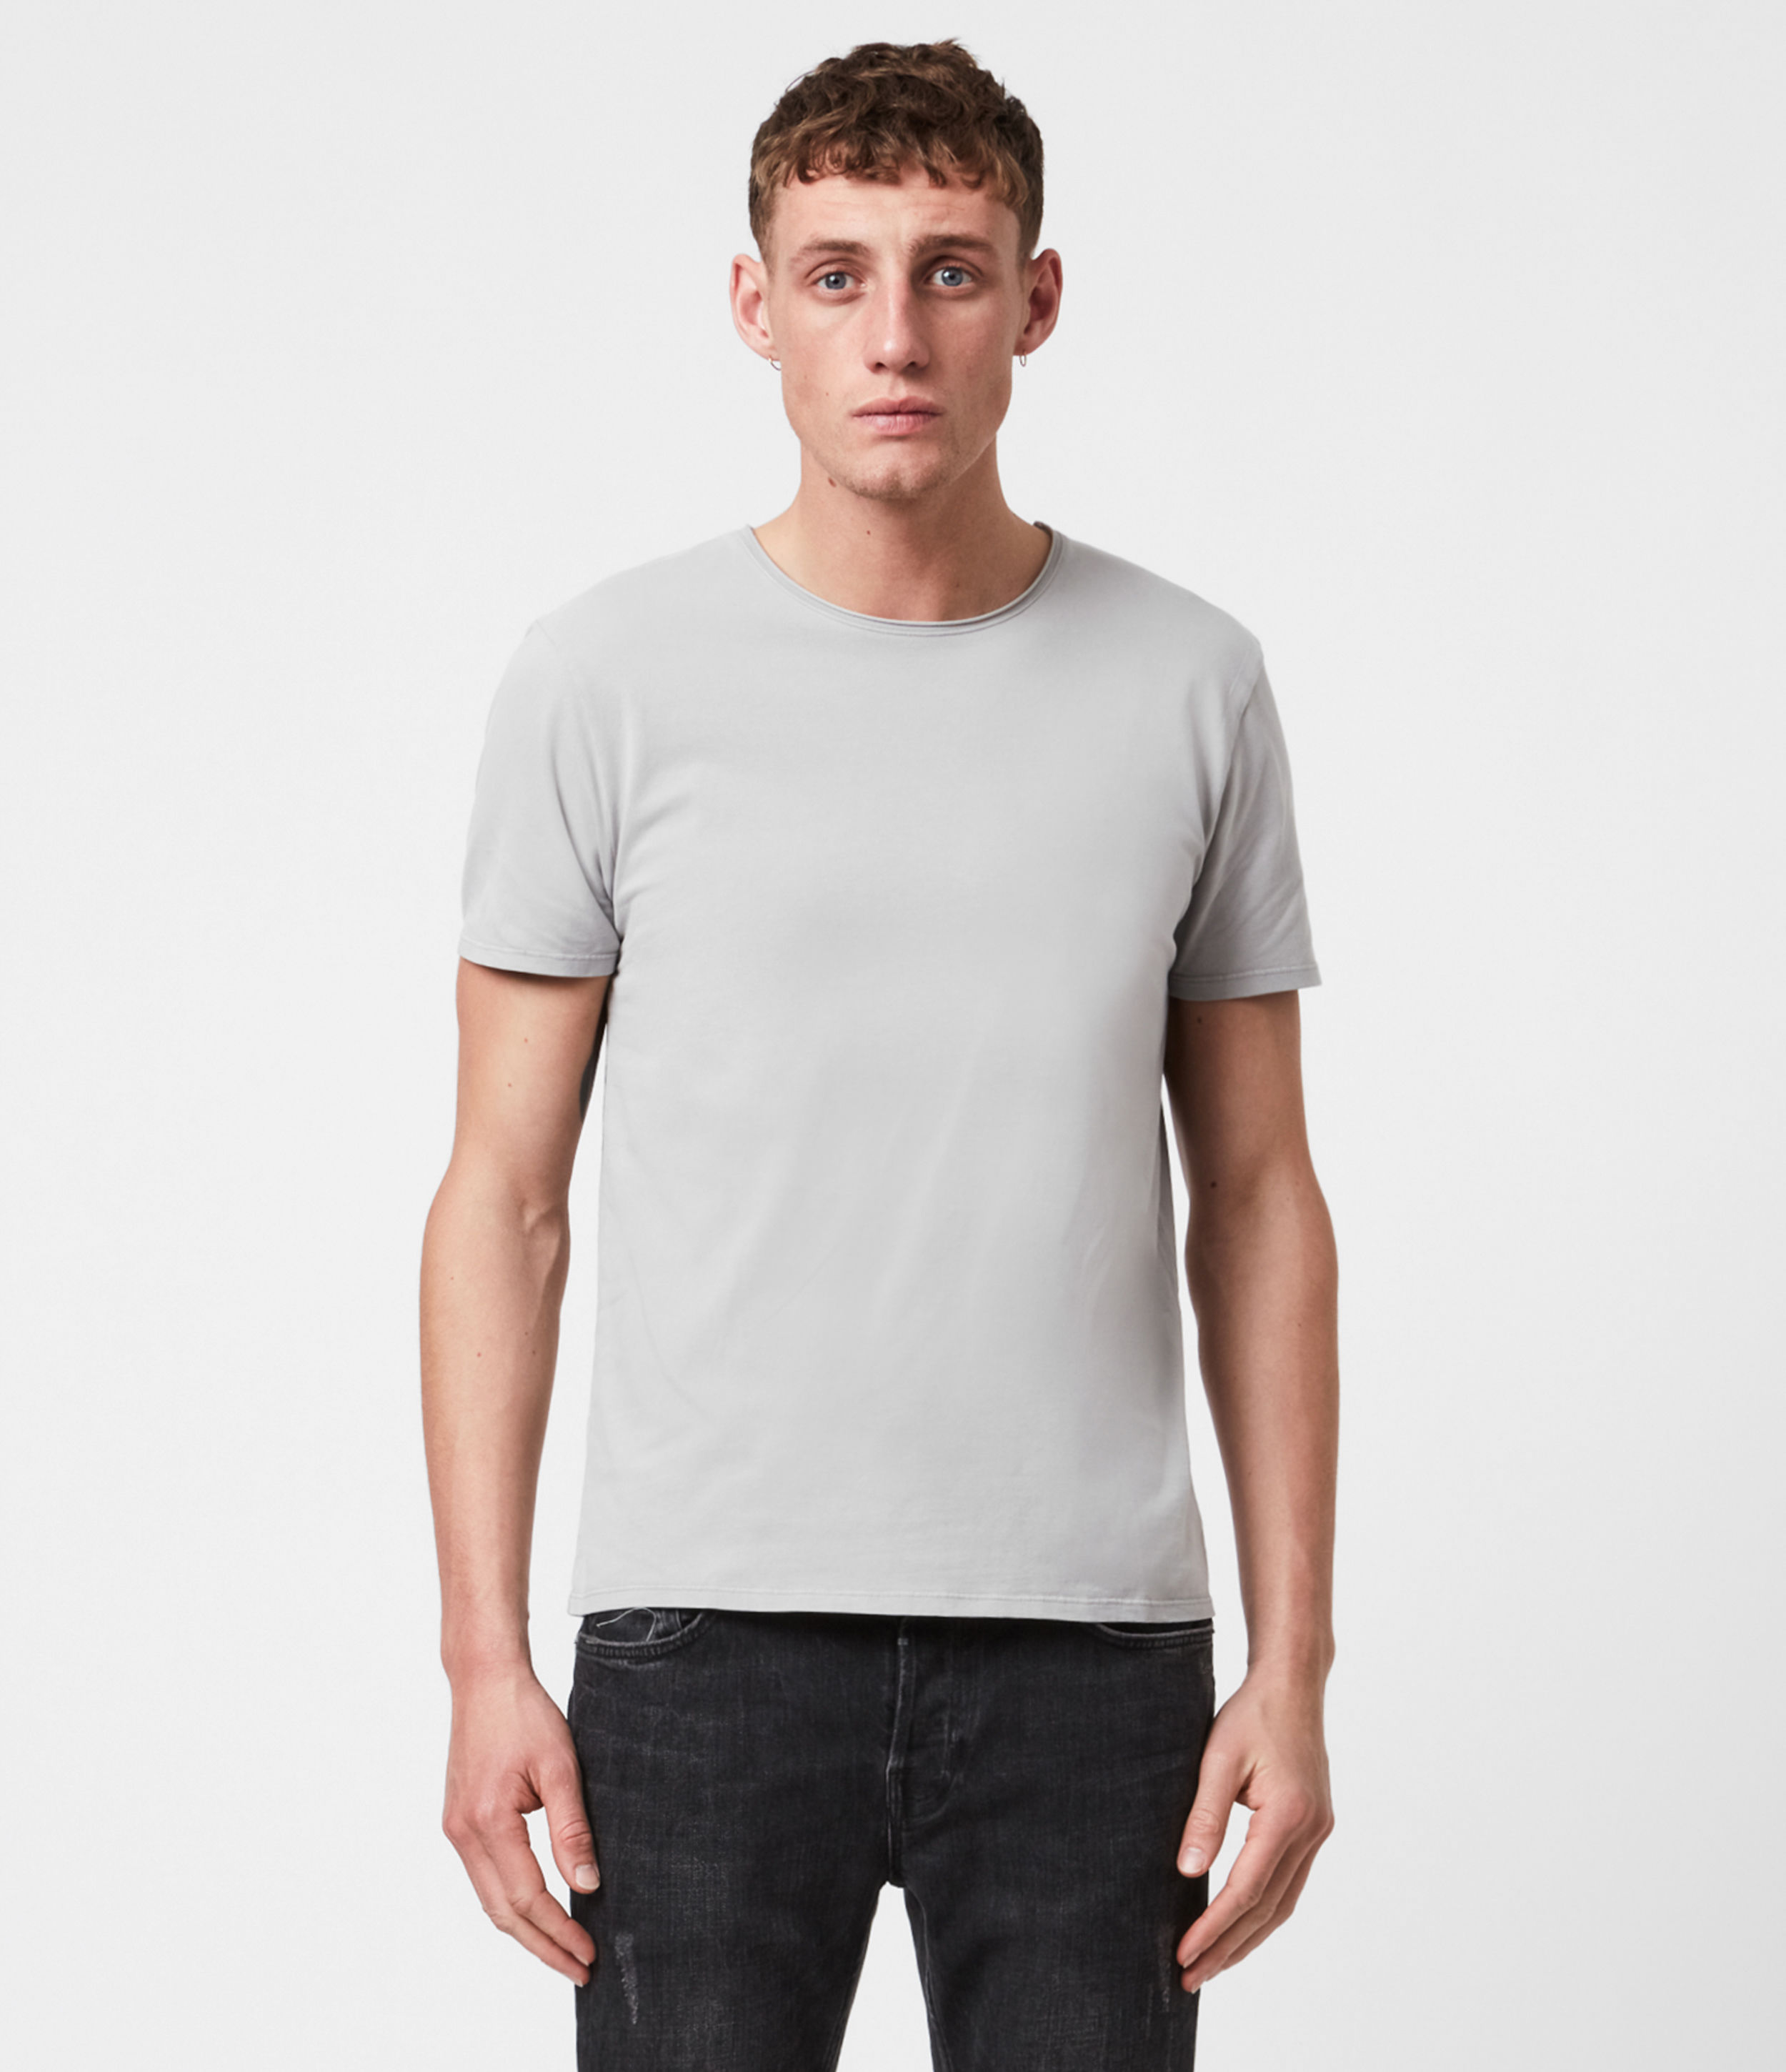 AllSaints Mens Bodega Crew T-Shirt, Putty, Size: L